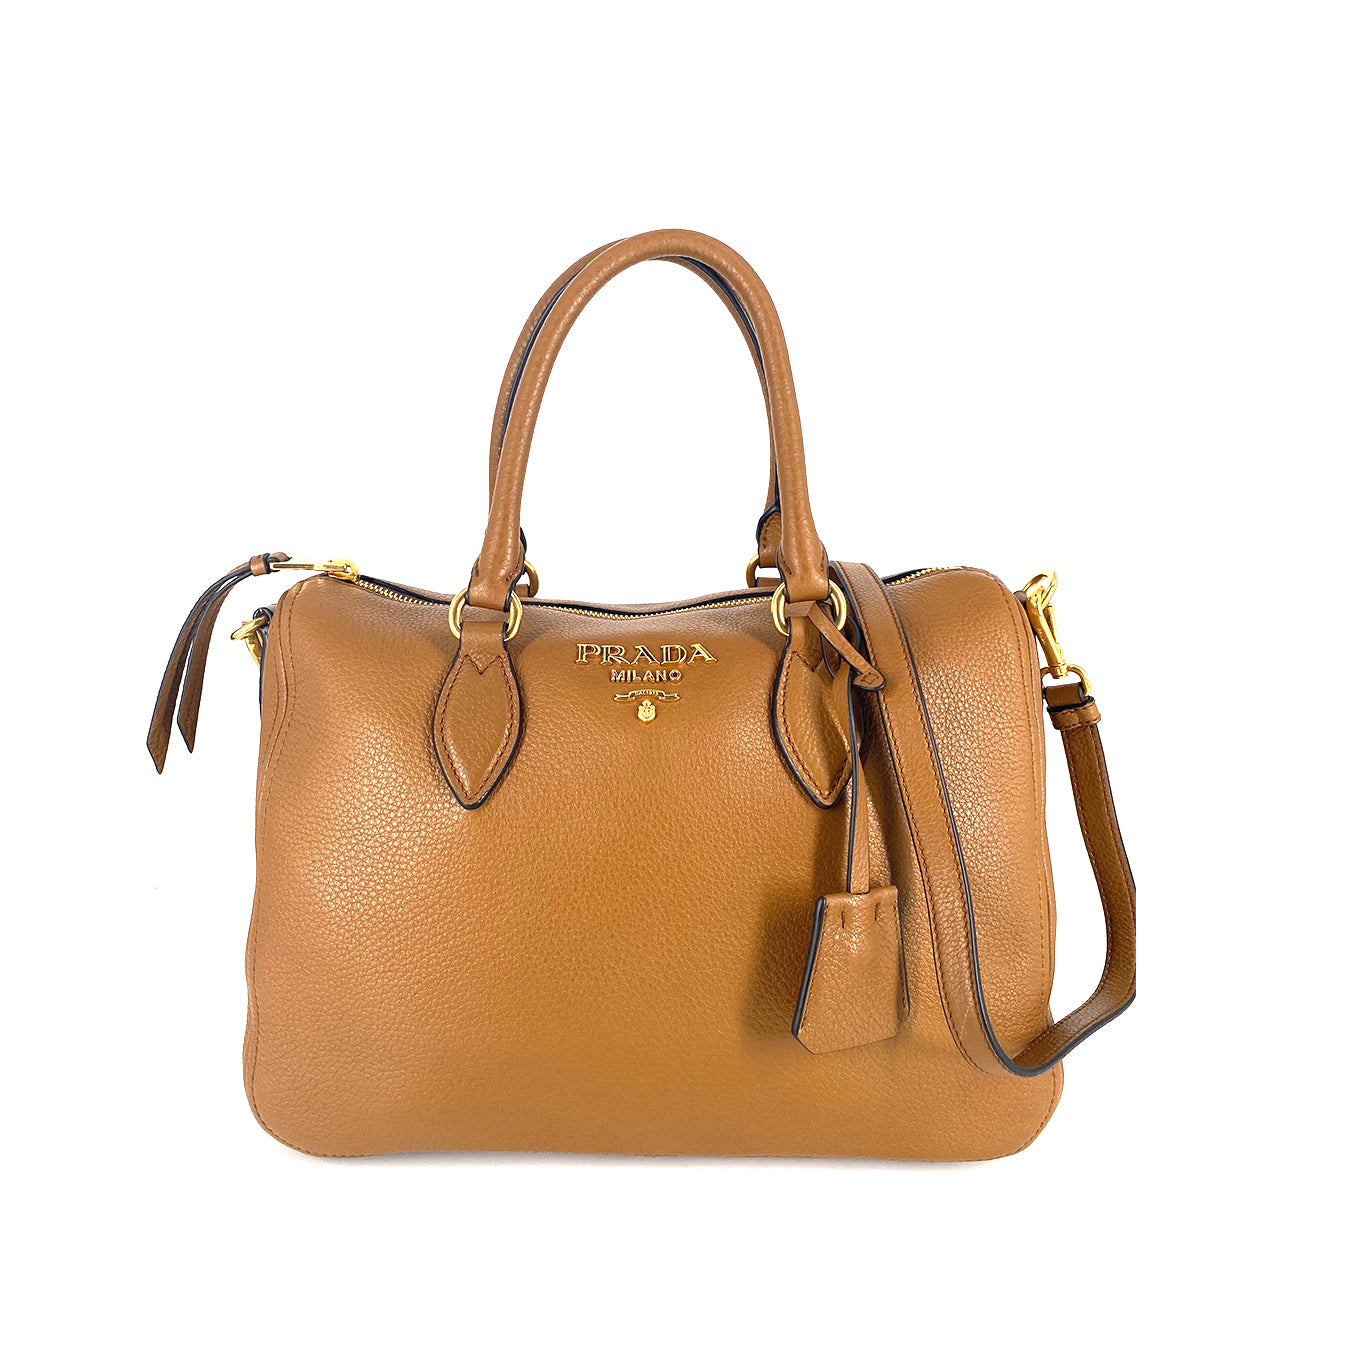 Prada 1BB023 Bauletto Vitello Phenix Speedy Cannella